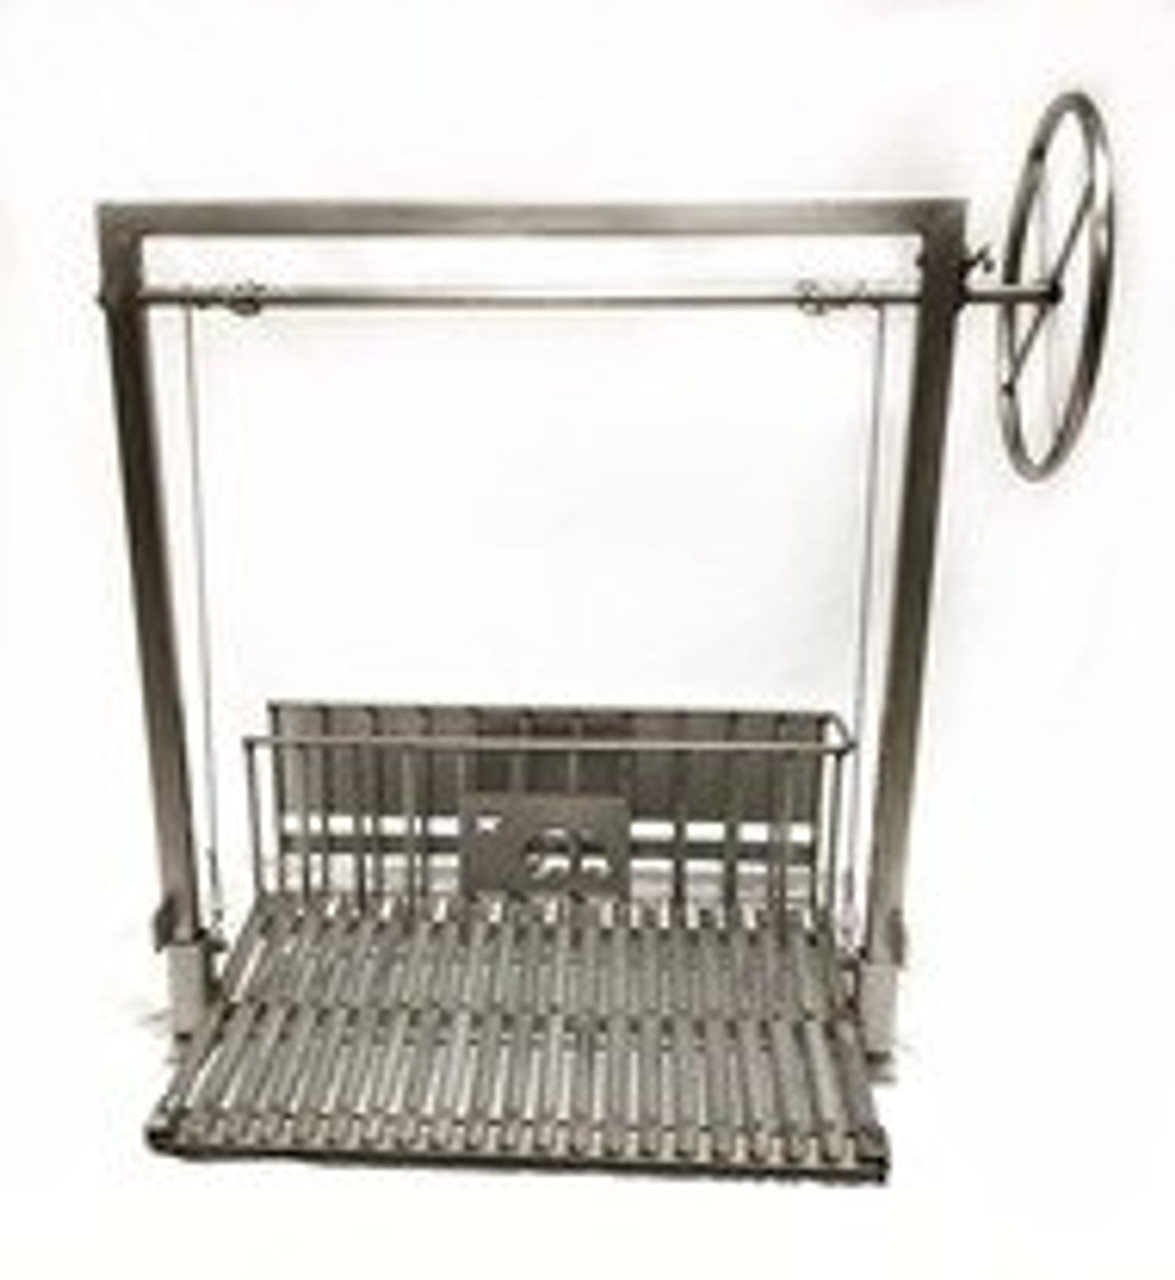 Stainless Steel Masonry Grill Kits with Rear Brasero and No Flange